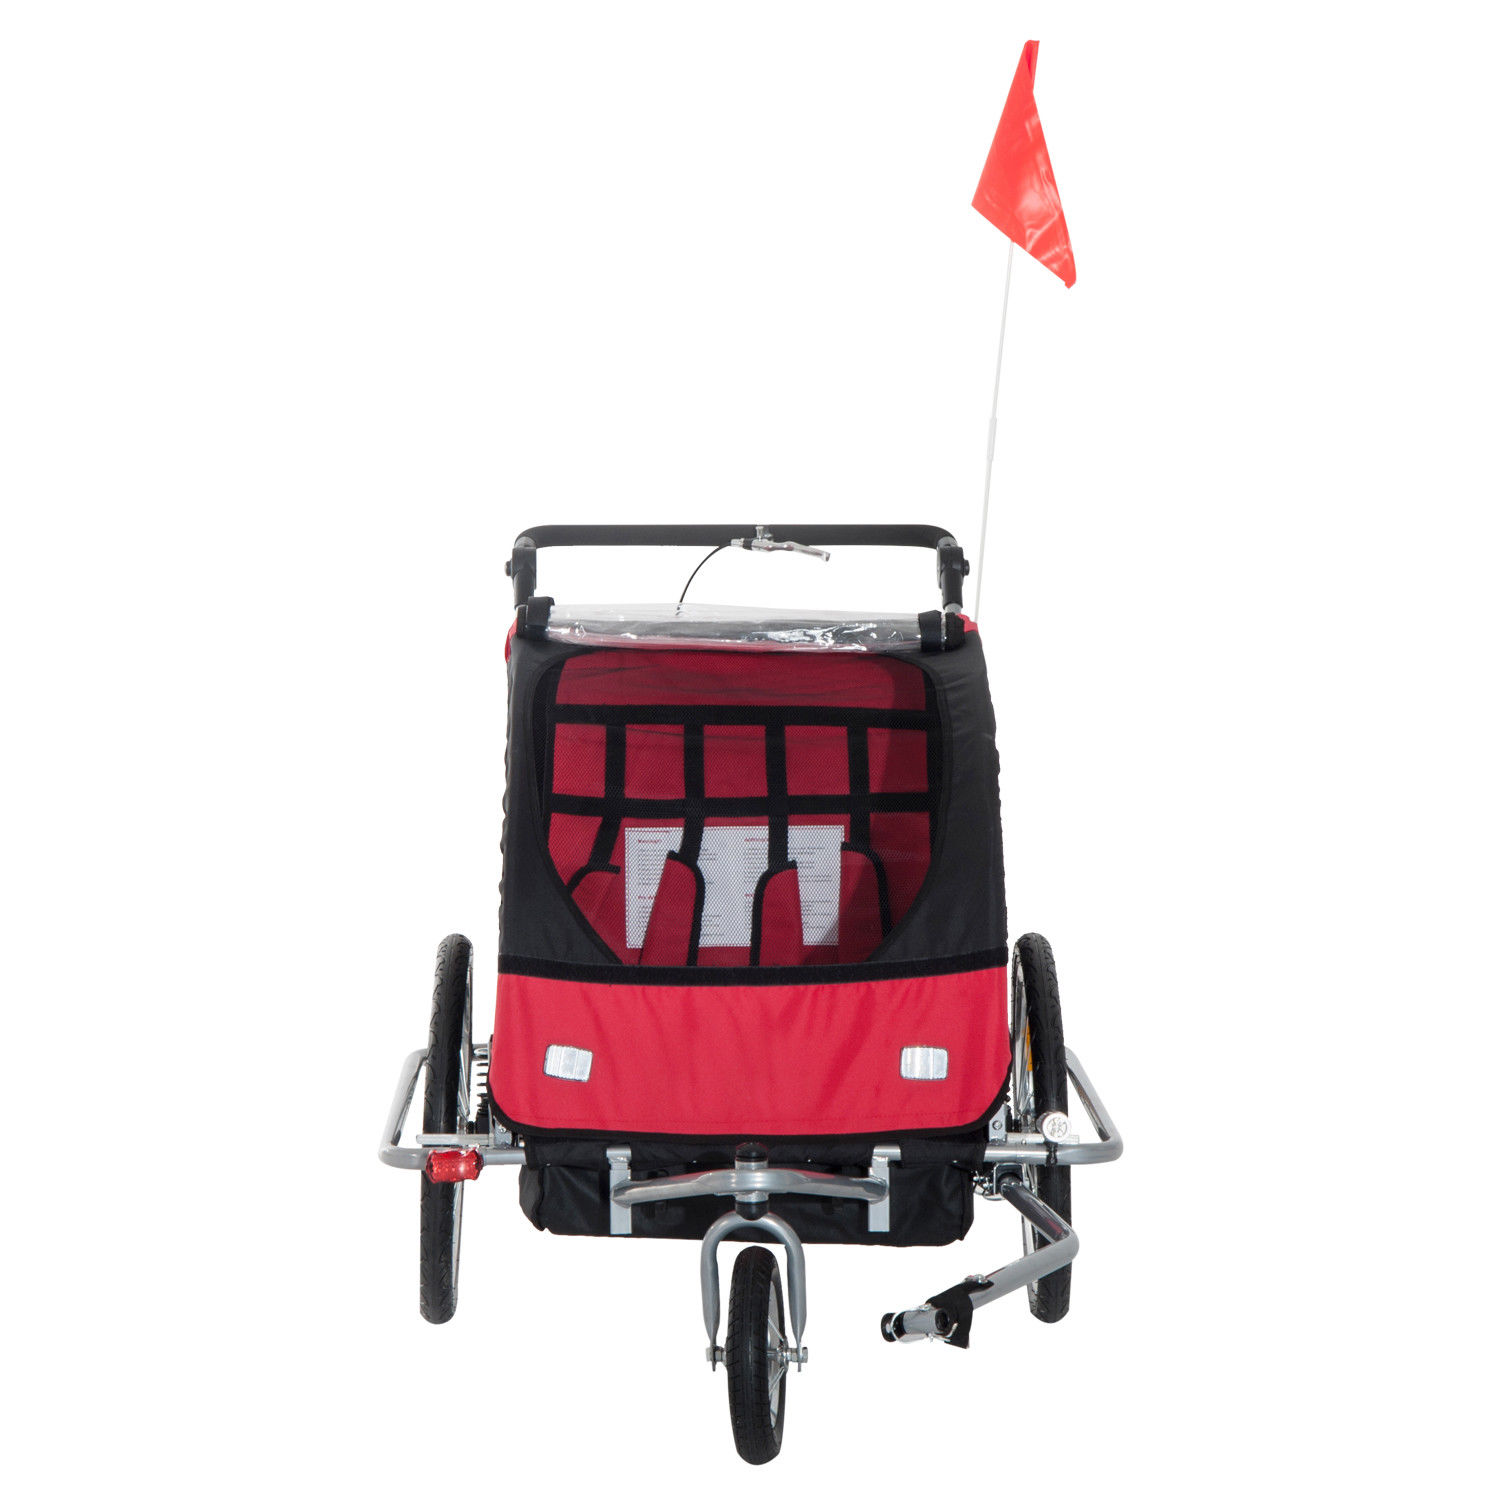 2-Seater-Child-Bike-Trailer-Kids-Carrier-Safety-Harness-Baby-Stroller-Jogger thumbnail 4